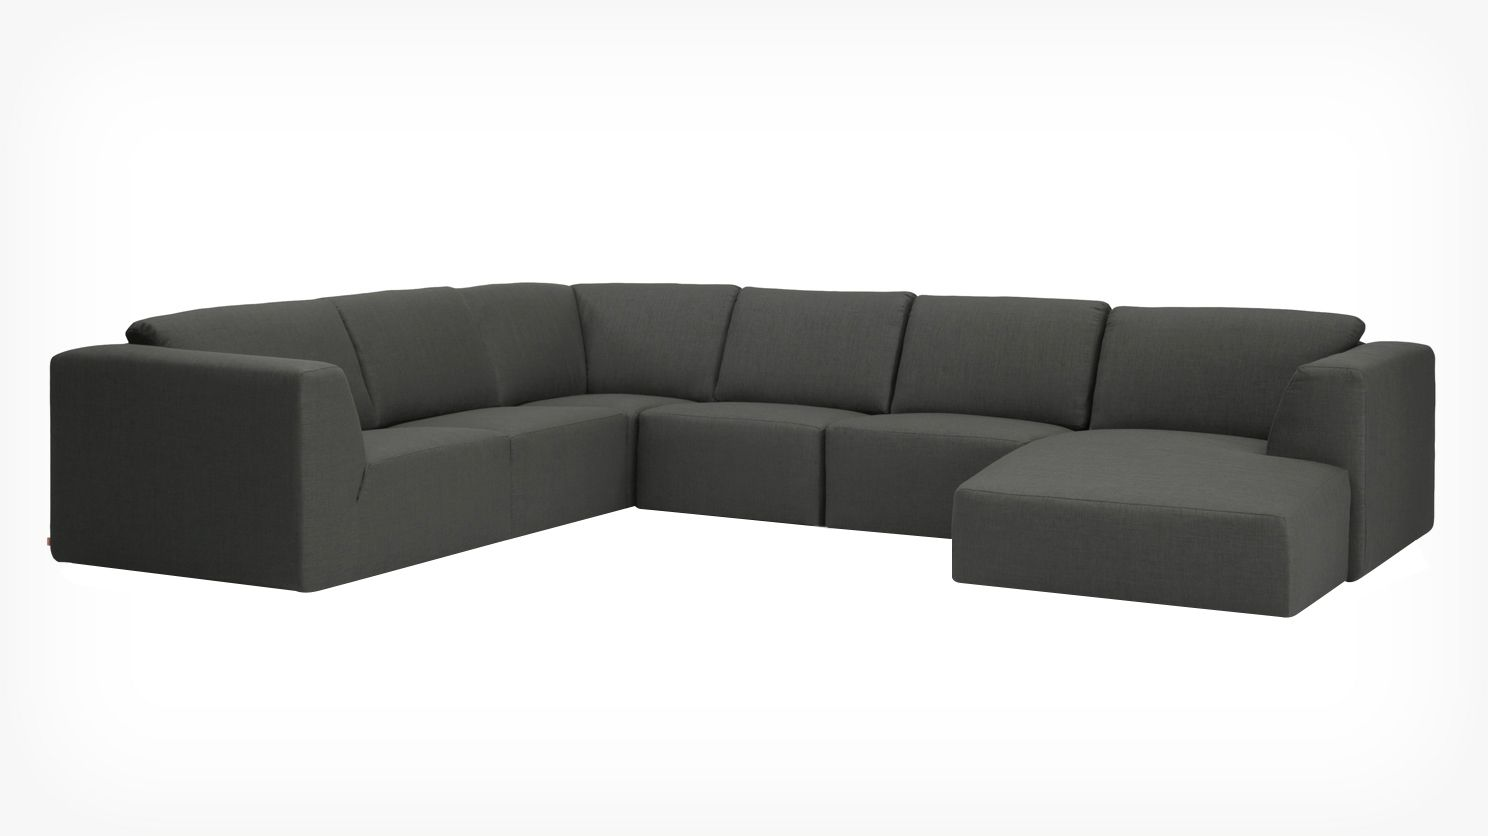 Morten 6 Piece Sectional Sofa With Chaise Canape Modulaire